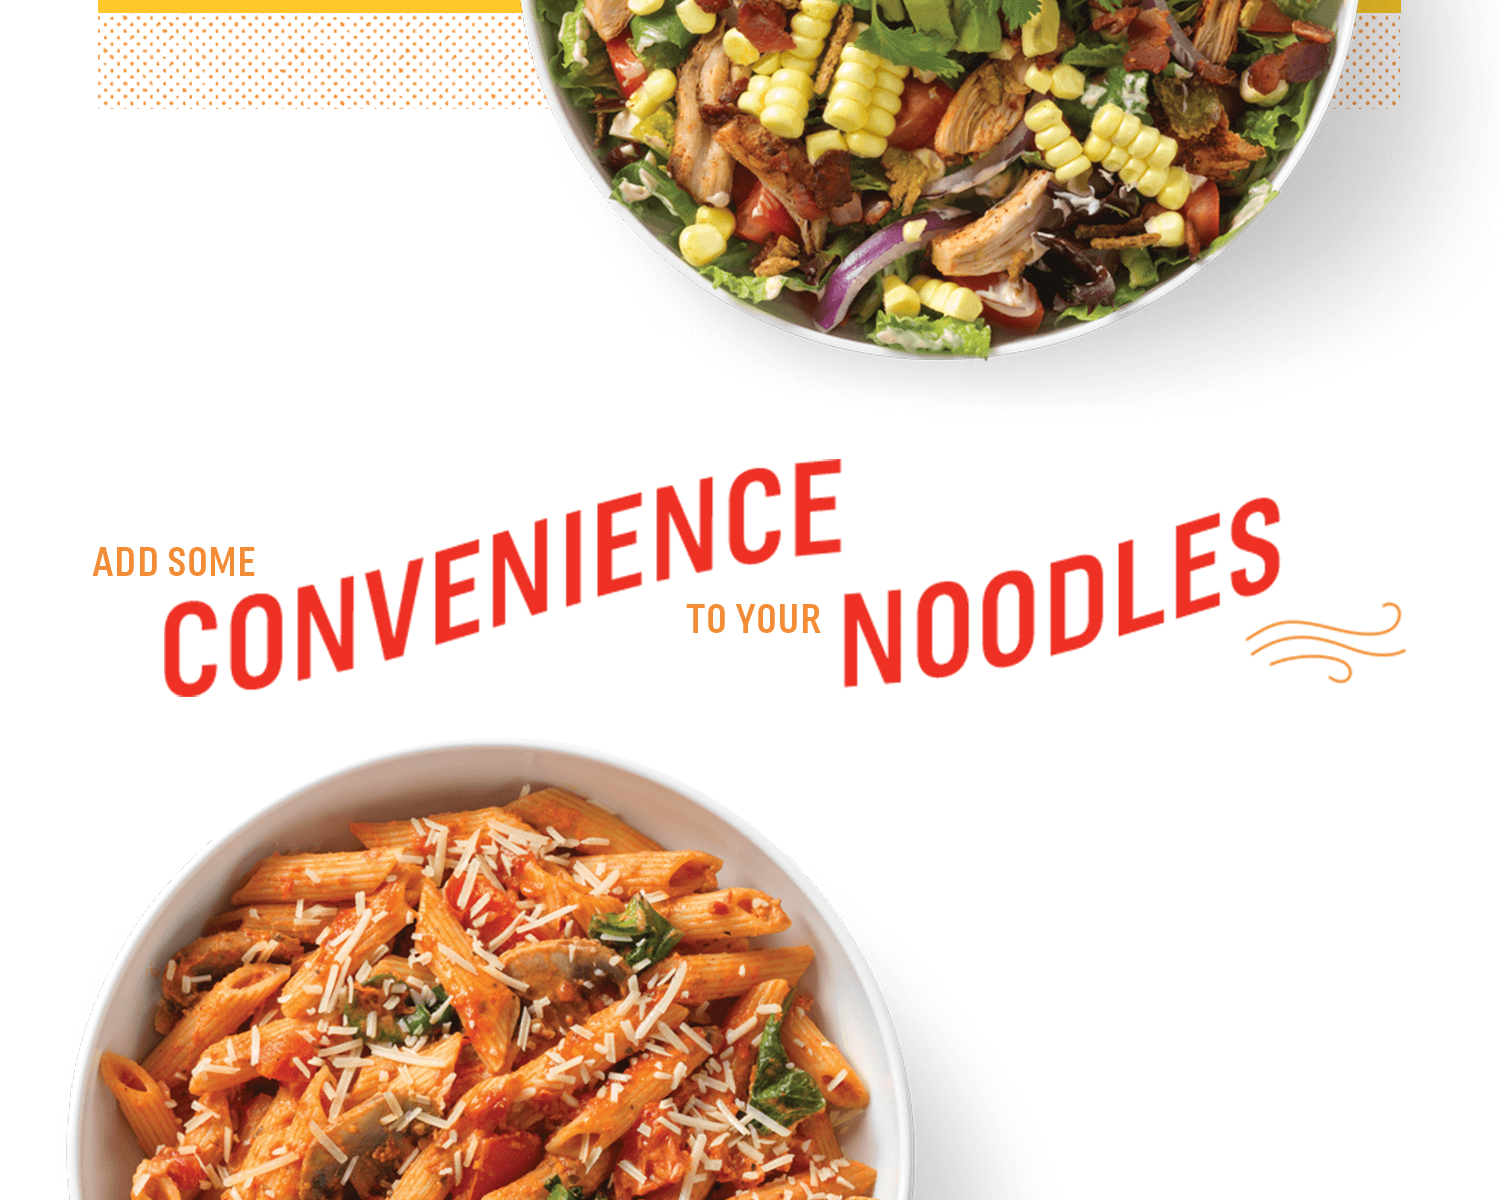 photo about Noodles and Company Printable Menu known as Noodles Business enterprise: On line Purchasing